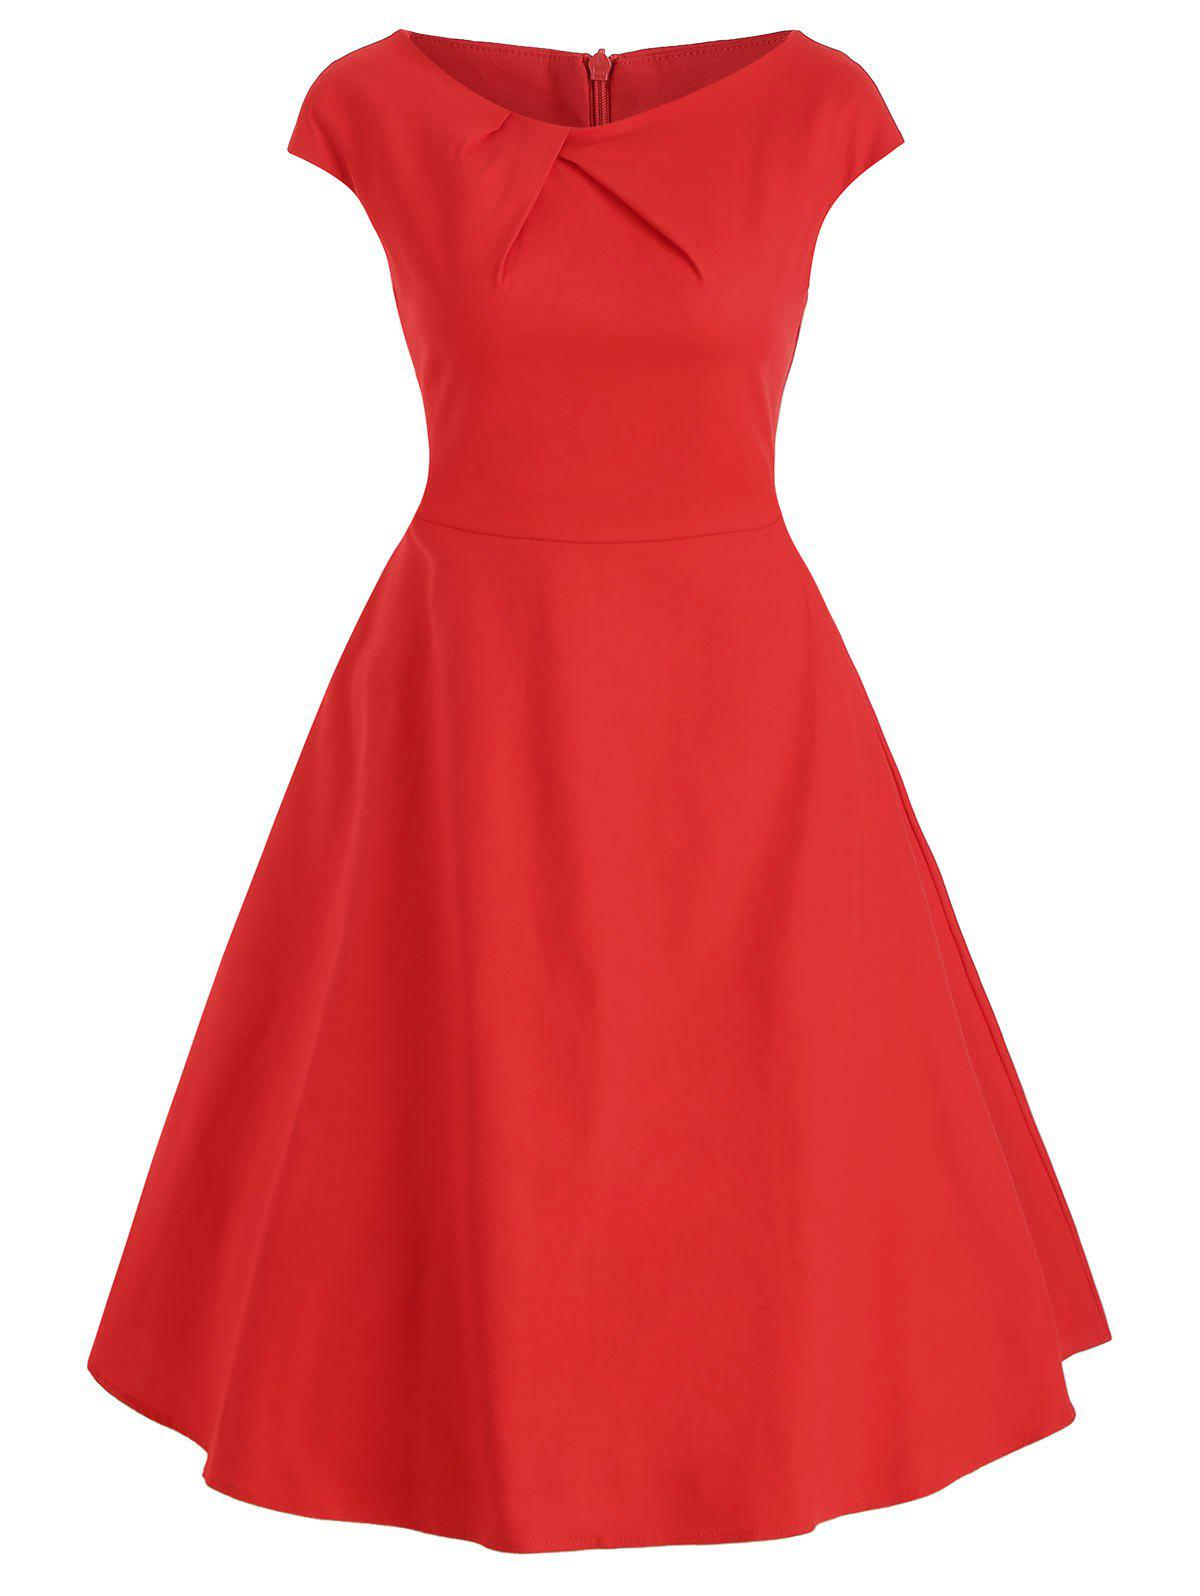 Sleeveless Vintage A-line Dress - RED S